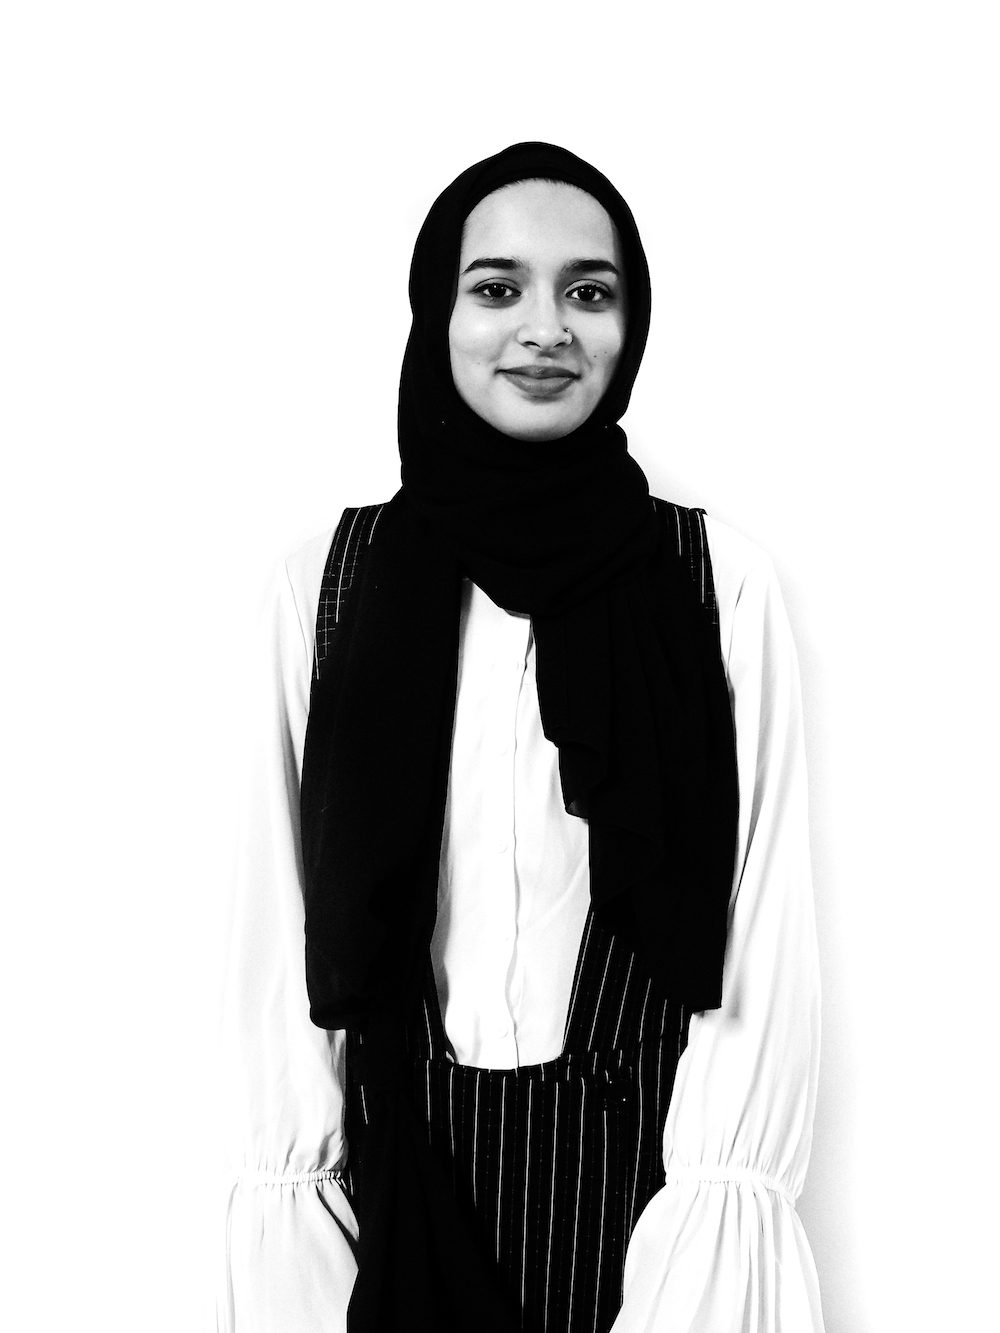 Zaynub Siddiqui - Muslim CohortSponsor: Muslim Community CenterZaynub Siddiqui is a West Coast native that now resides in Maryland. A lover of art since her childhood, she strives to create pieces that are impactful to others. She is training under Haji Noor Deen in the art of Arabic Calligraphy. Zaynub has had two exhibitions in Washington, DC, and was the youngest artist to be featured in 2017 Baltimore's Artscape, the nation's largest street festival. As a teenage Muslimah in today's society, she hopes to use her talent to inspire others while exploring the sacred through art and the sacredness in art.Instagram: @peachy.zee